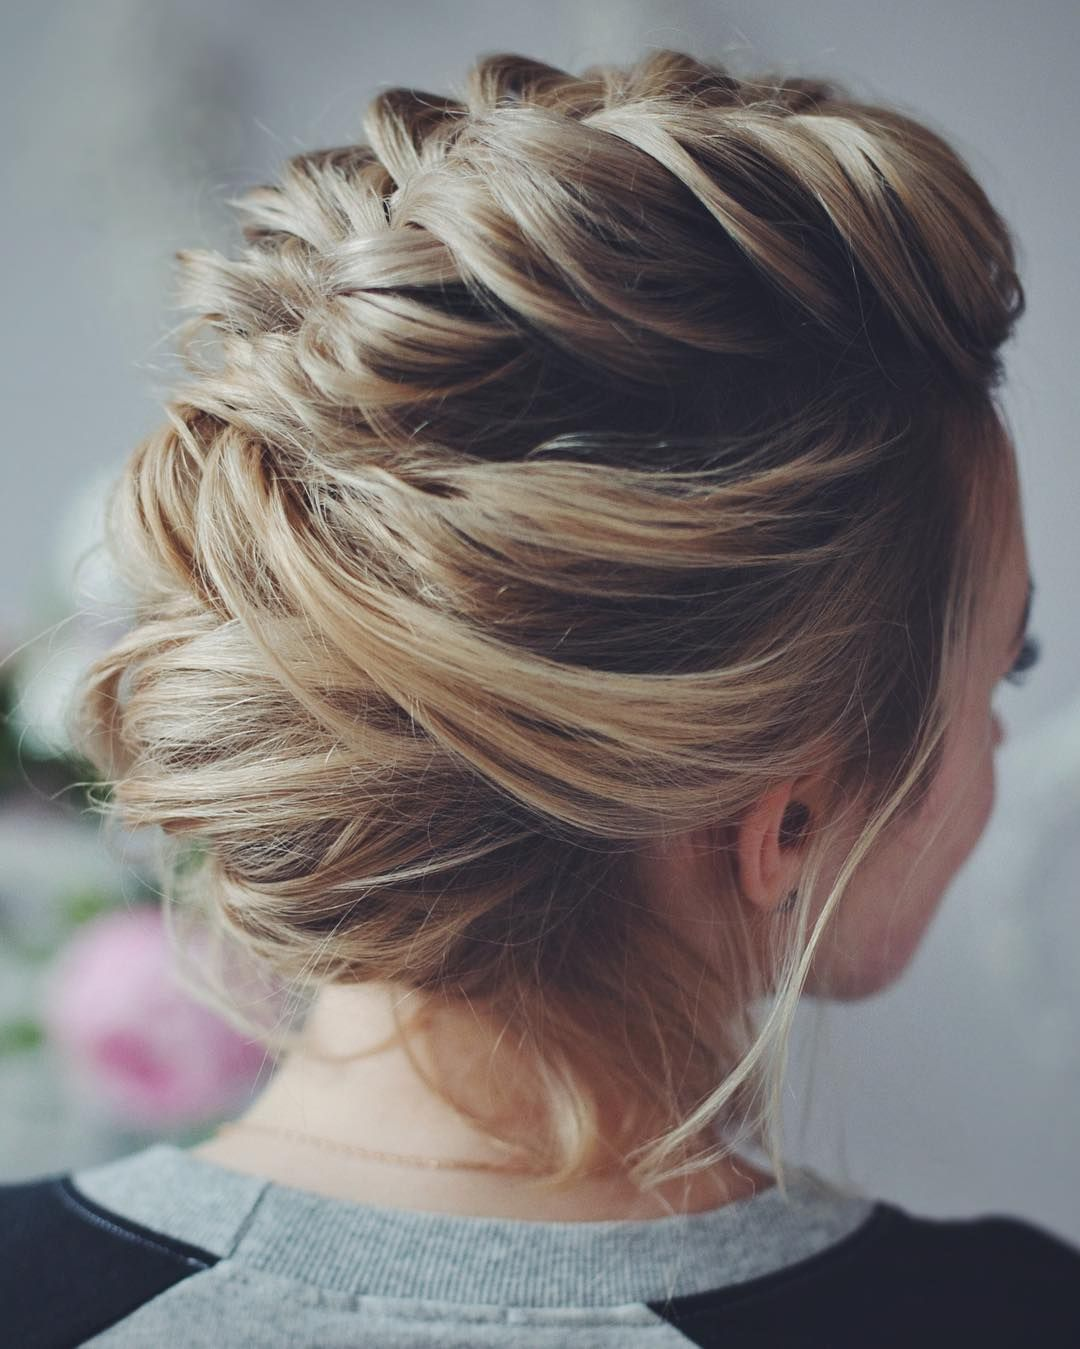 Prom Hairstyles 16 Easy Prom Hairstyles For Short And Medium Length Hair  Pinterest